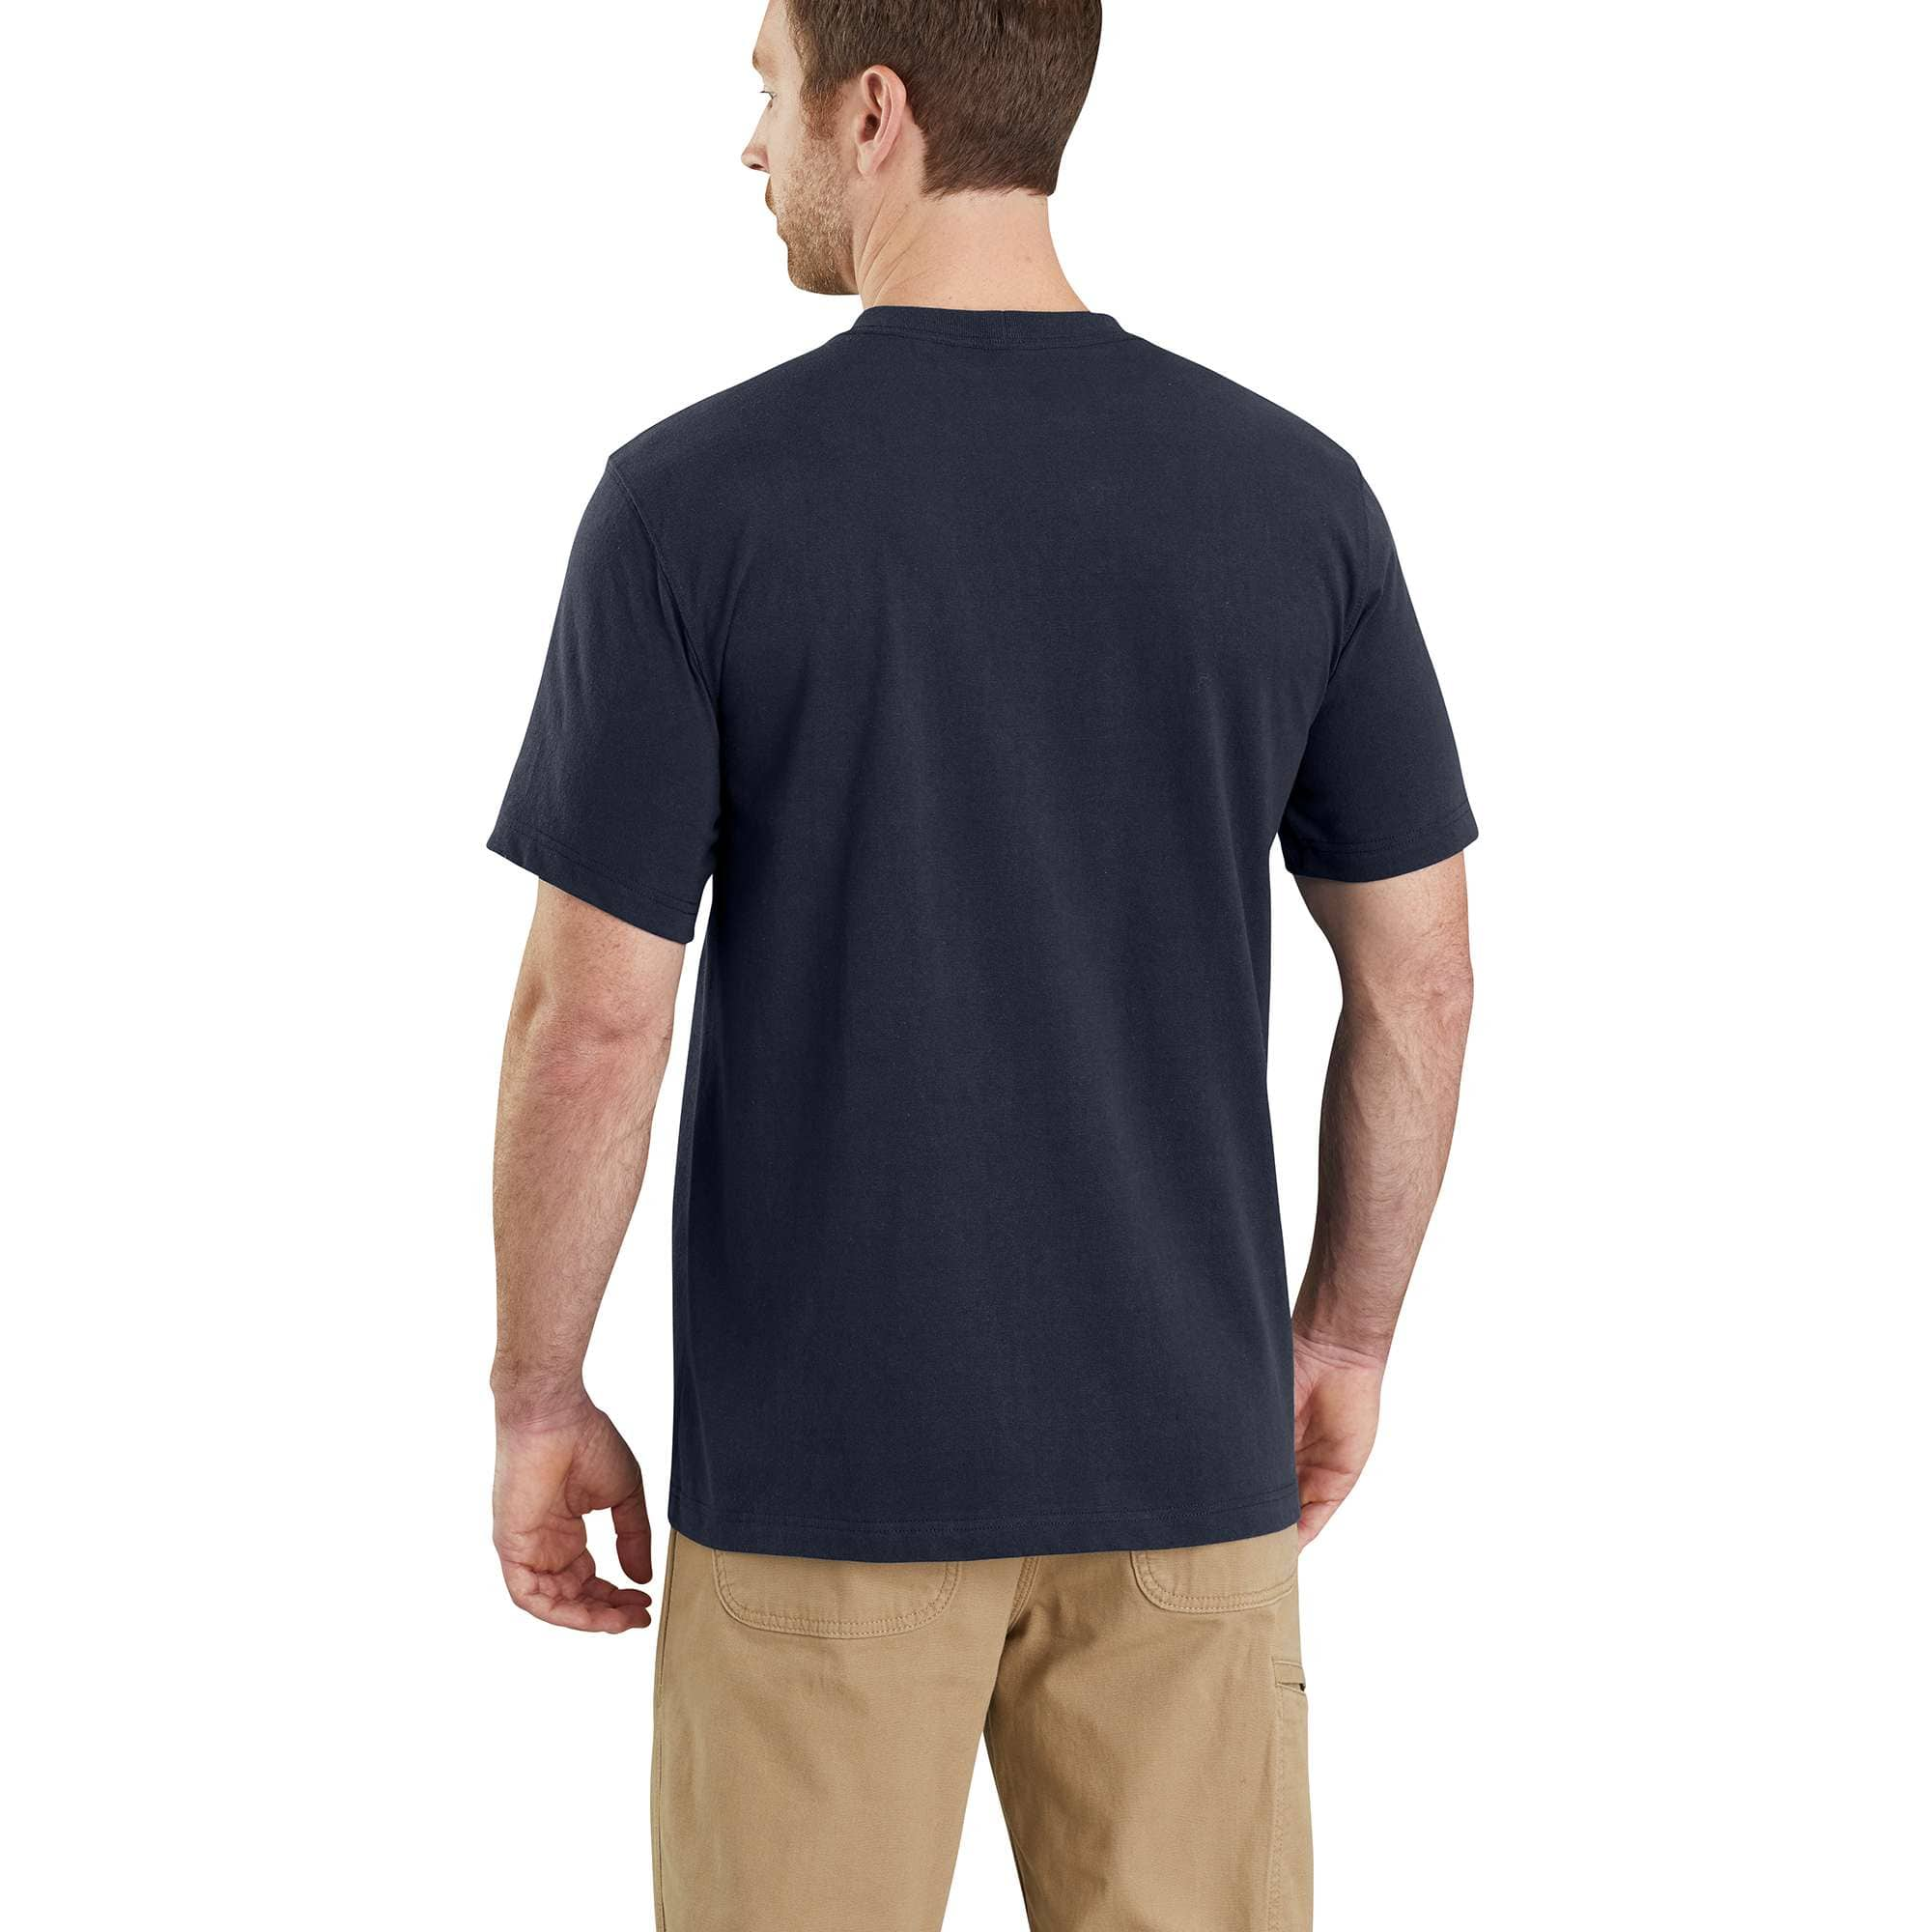 Carhartt Maddock S//S T-Shirt Men/'s XXL Navy Lighter Weight Relaxed NEW